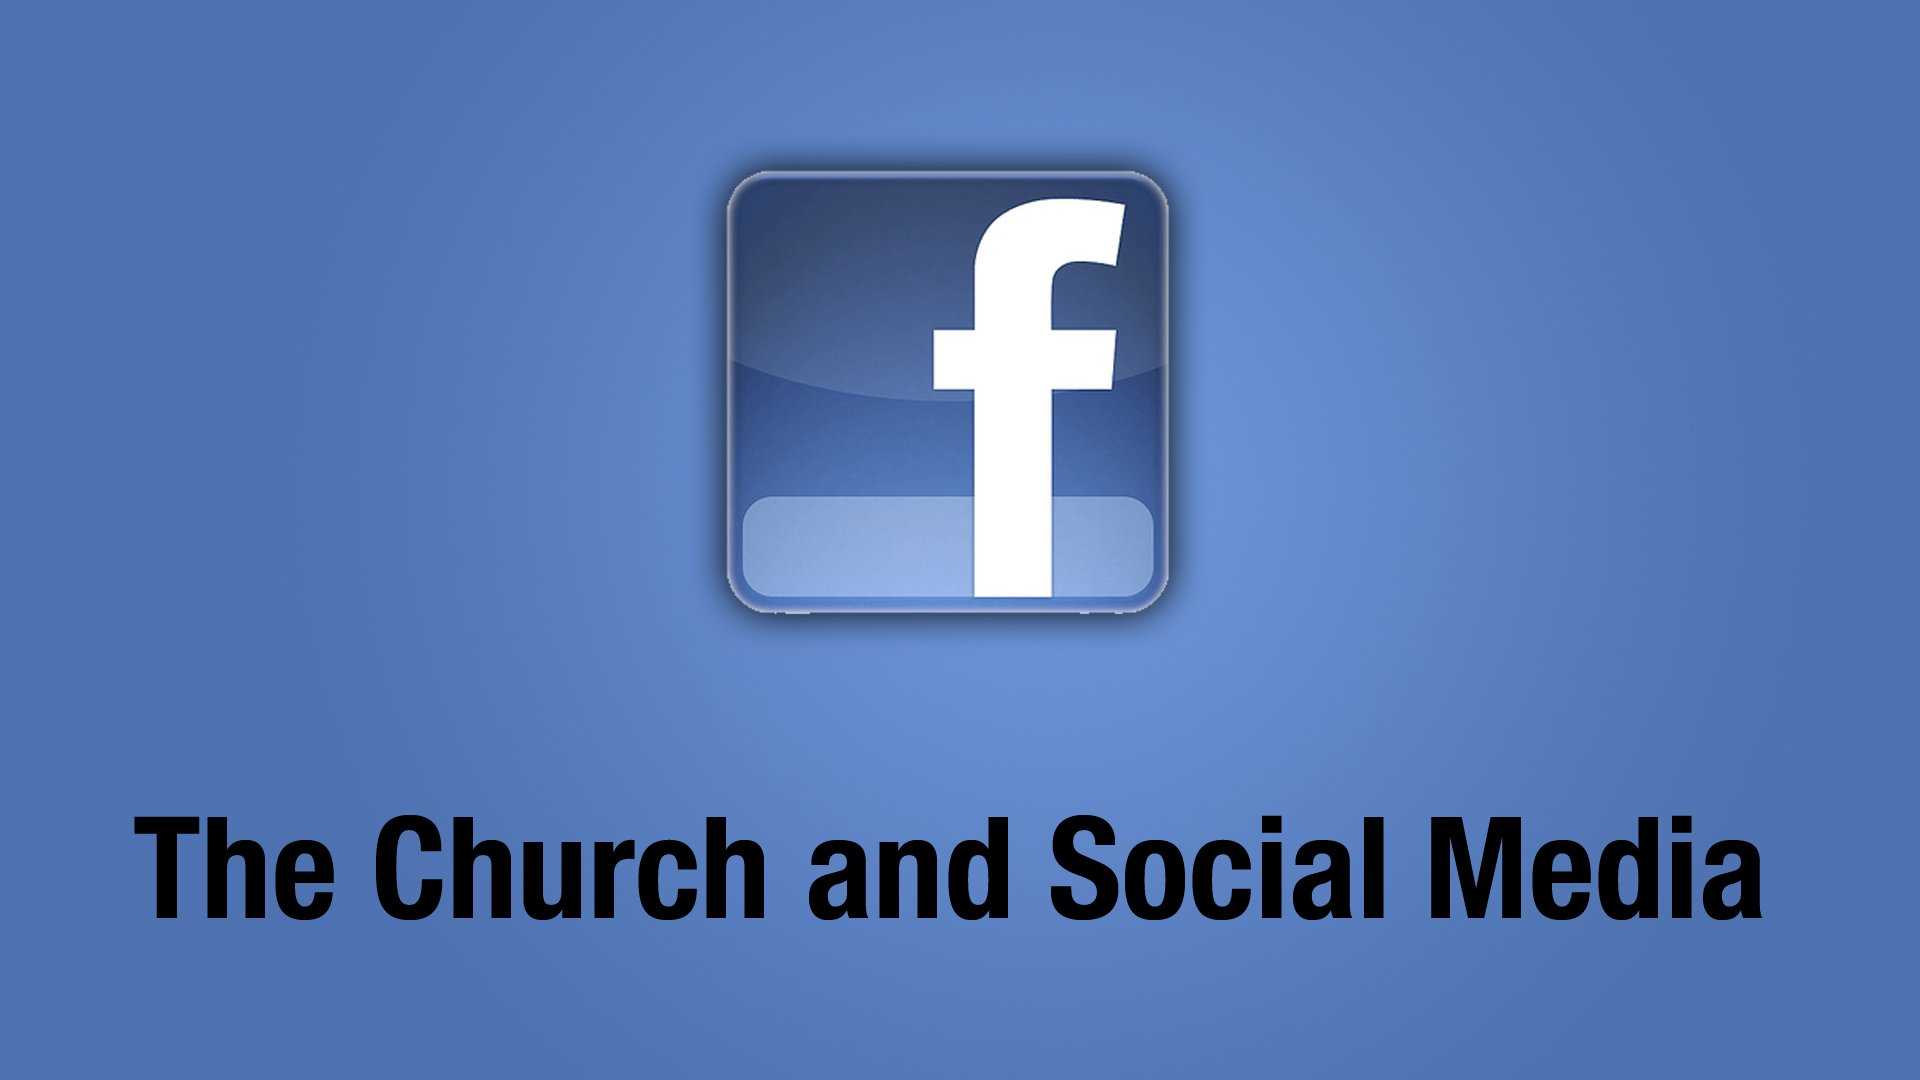 facebook, the church and social media,